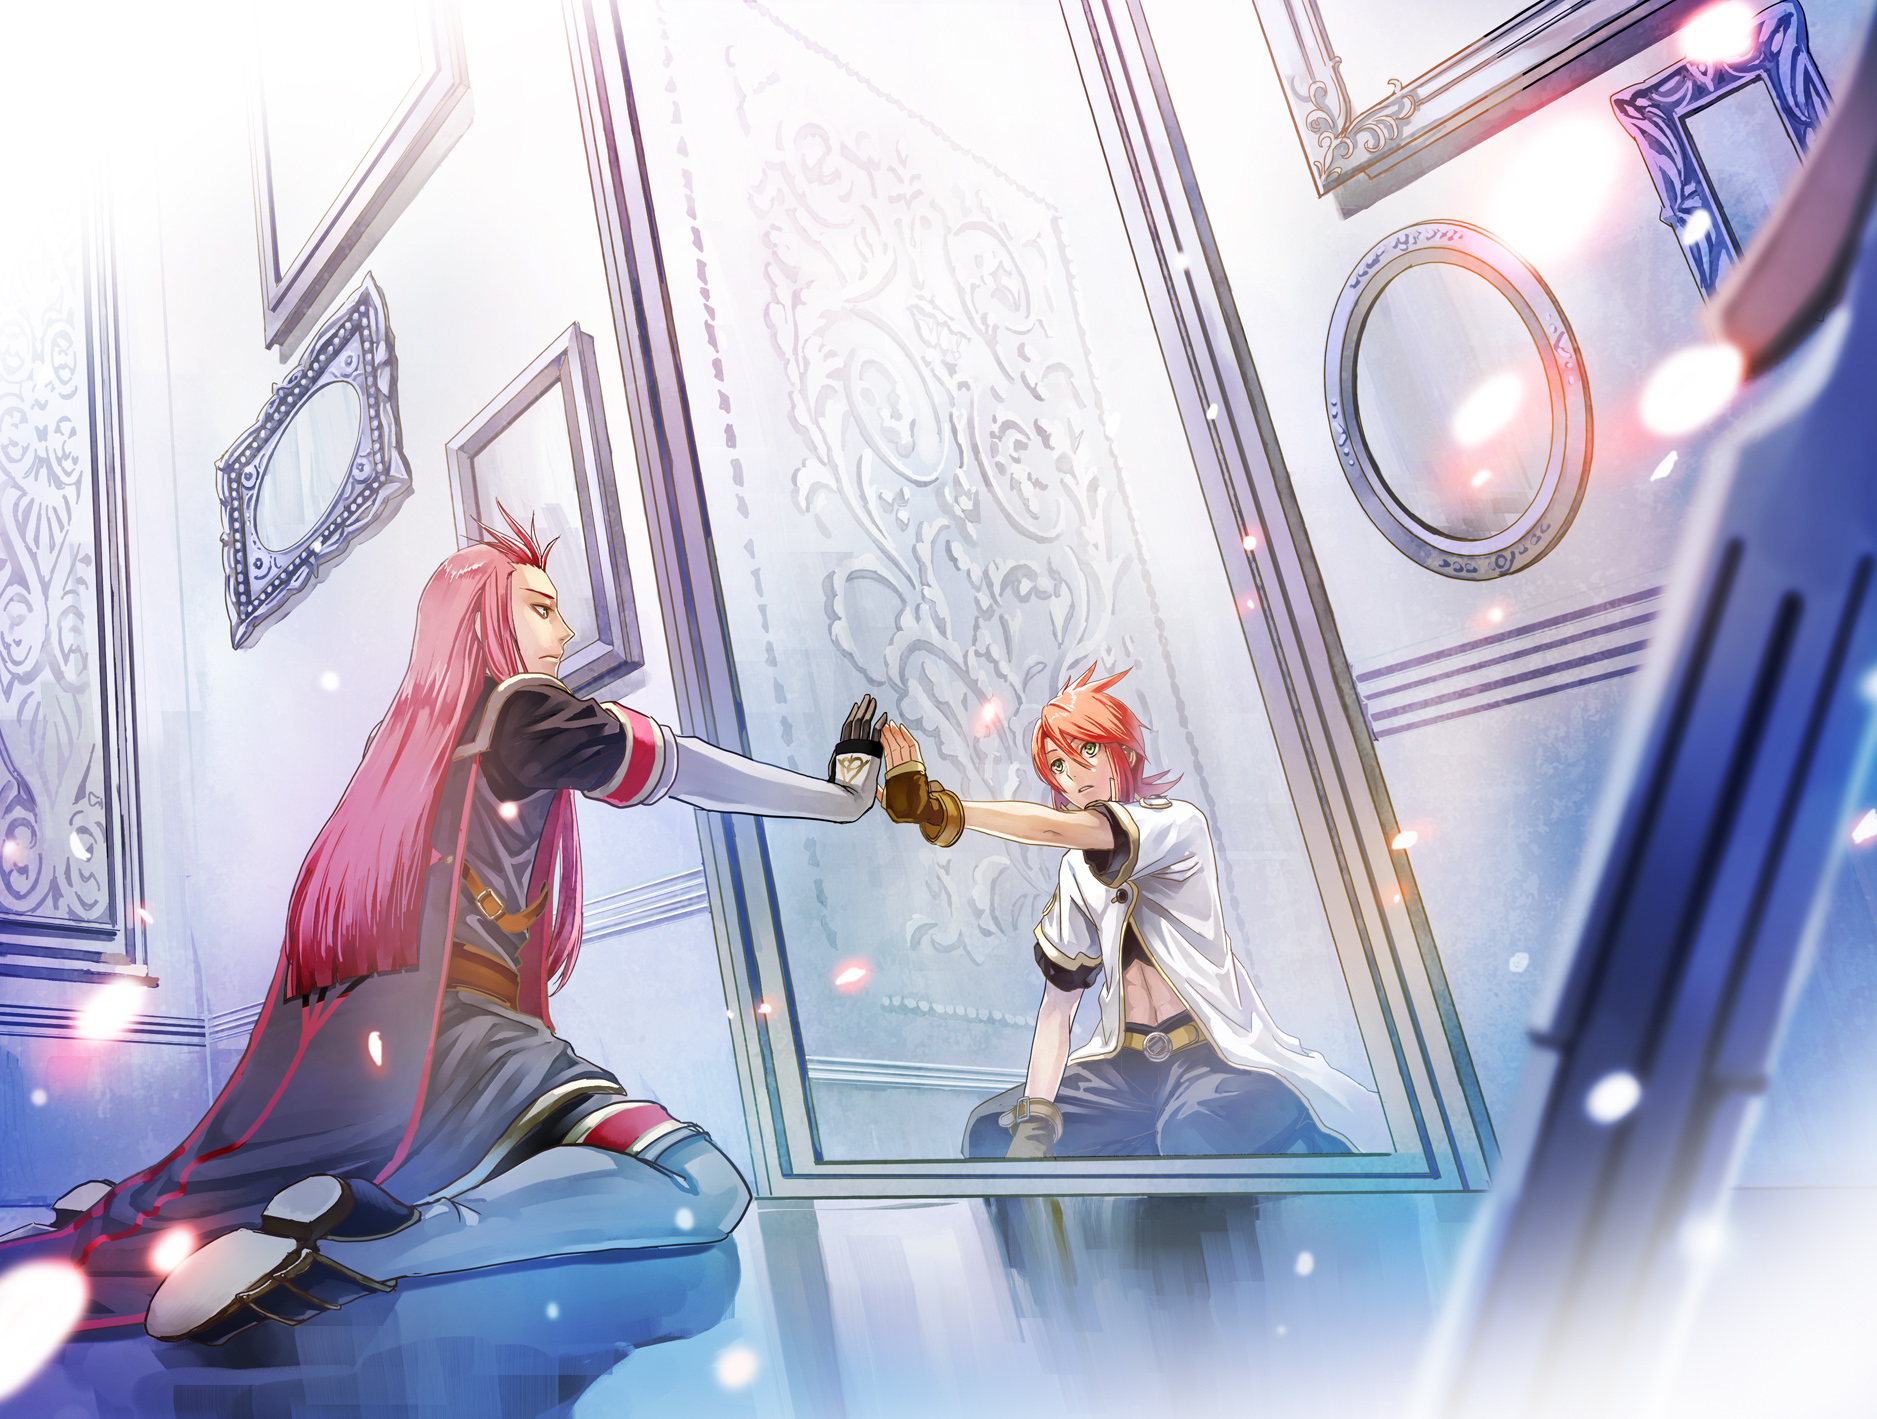 Tales of the Abyss fantasy wallpaper 1877x1419 124383 1877x1419